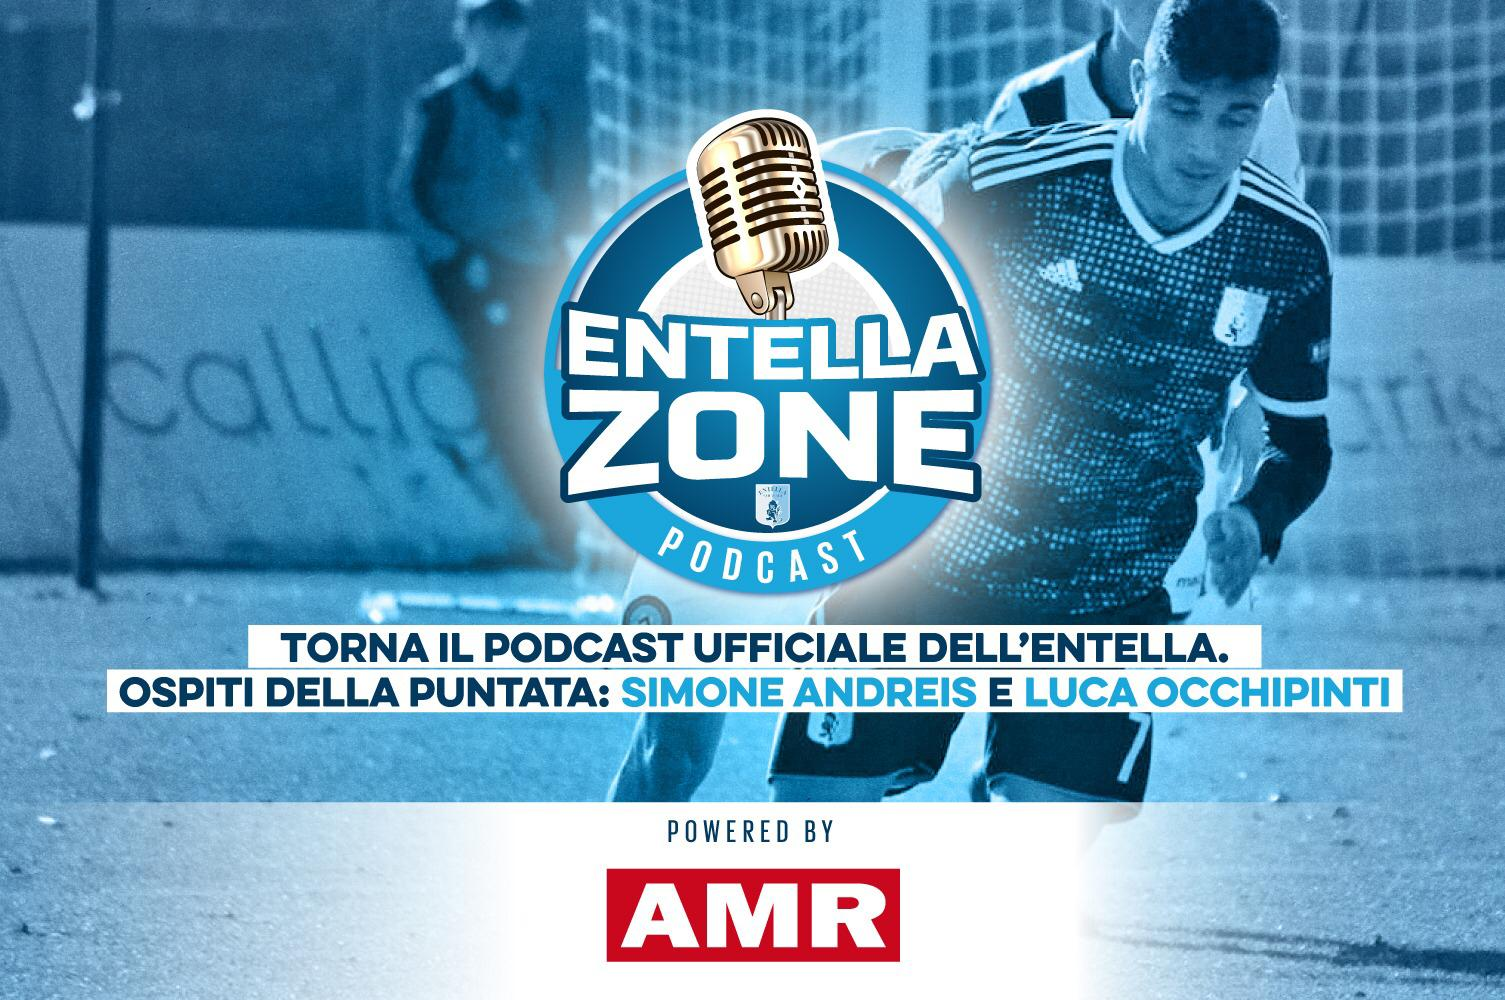 podcast simone andreis